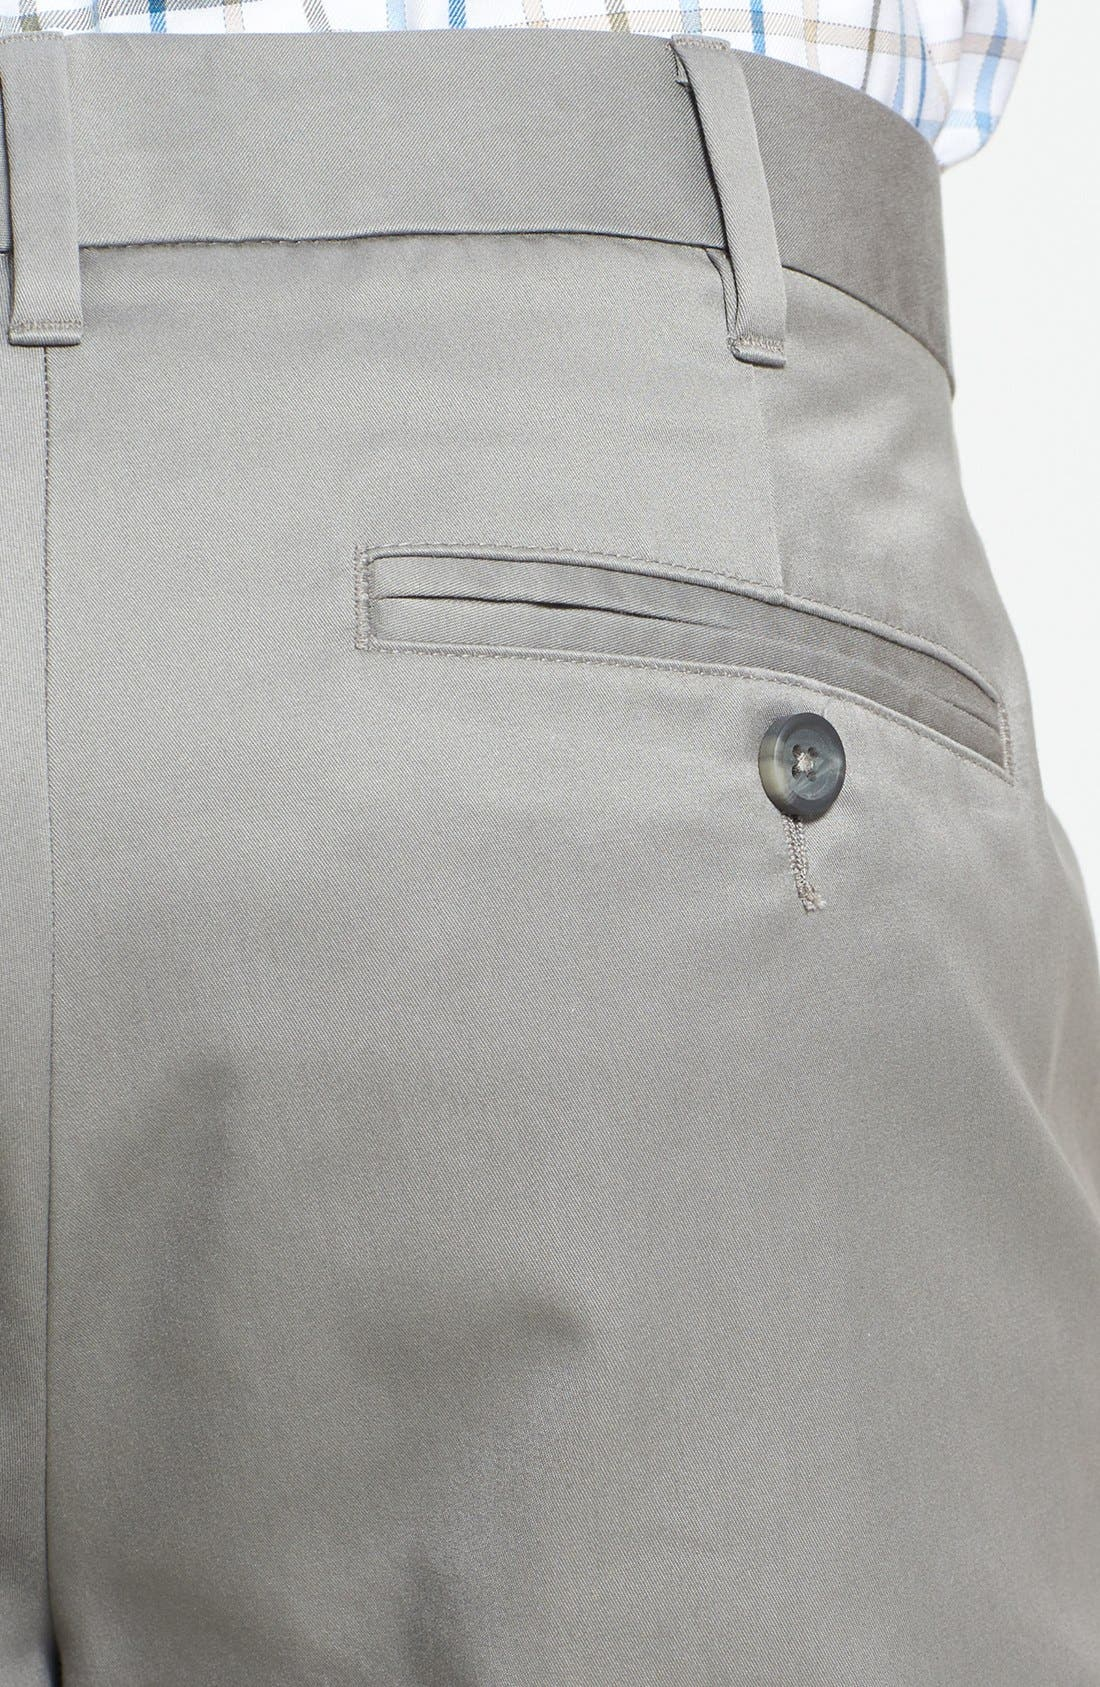 Alternate Image 4  - Bonobos 'Weekday Warriors' Non-Iron Slim Fit Cotton Chinos